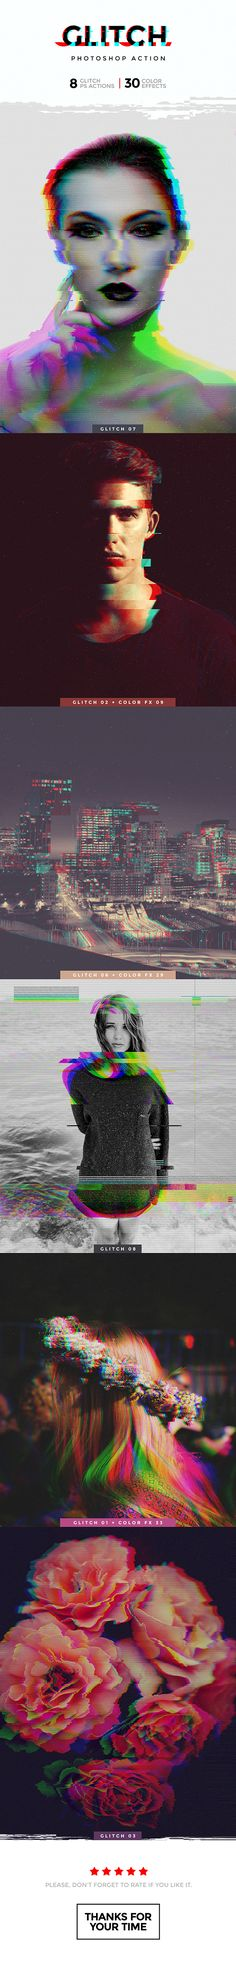 Glitch Photoshop Action — Photoshop ATN #music #pixels • Download ➝ graphicriver.net/...